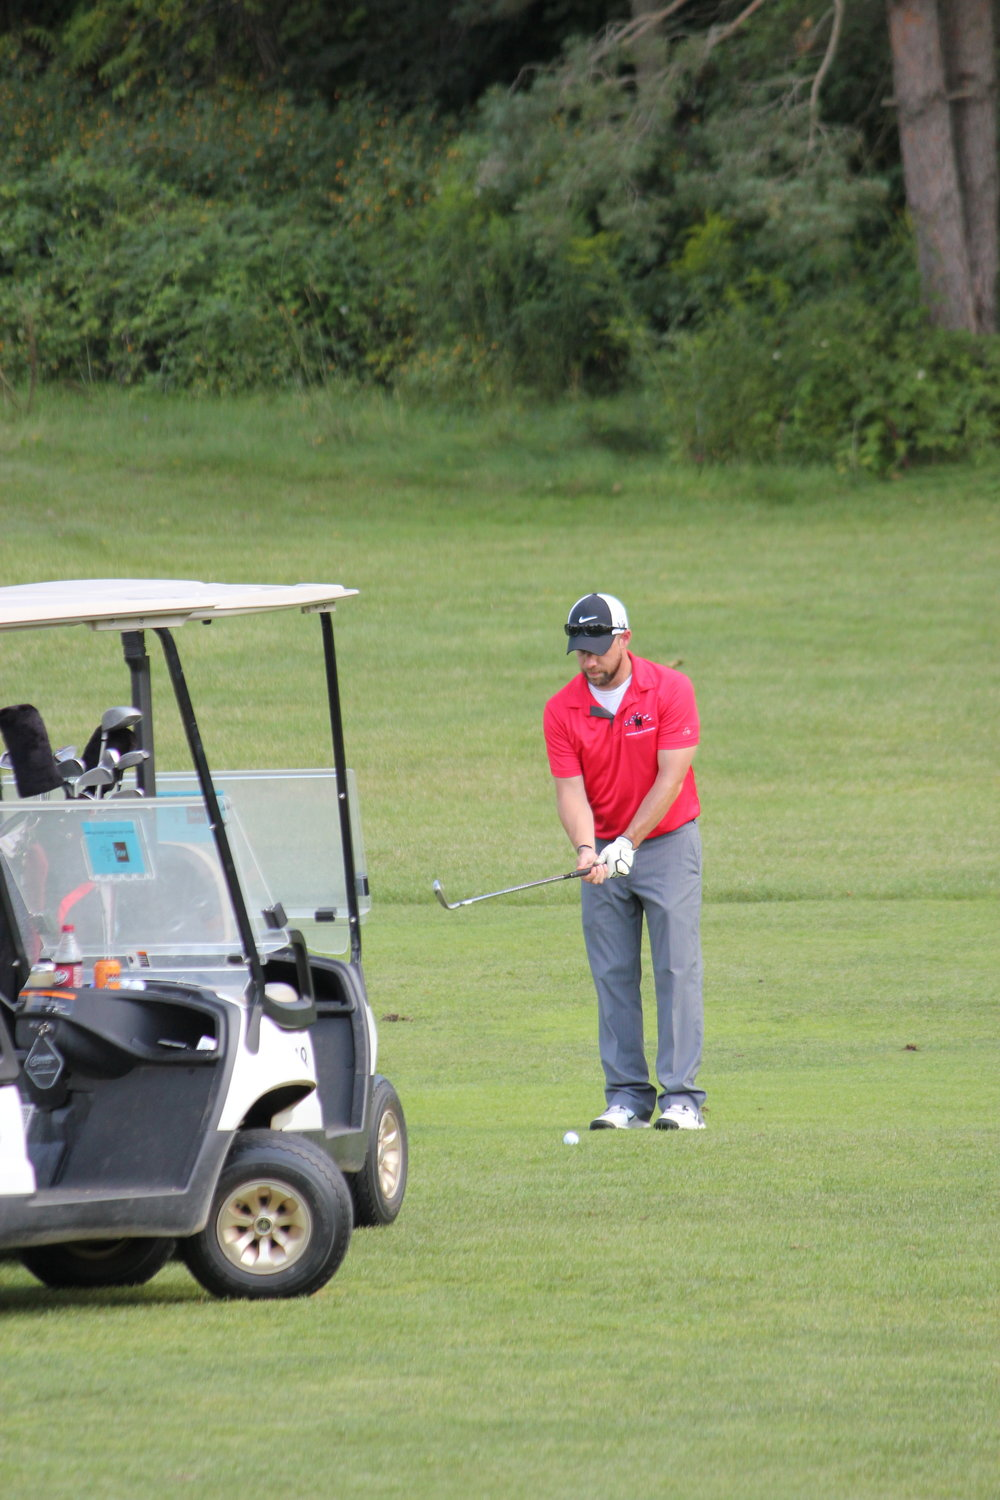 IMG_2248 Jesse FFO Golf Outing 2015 copy.JPG